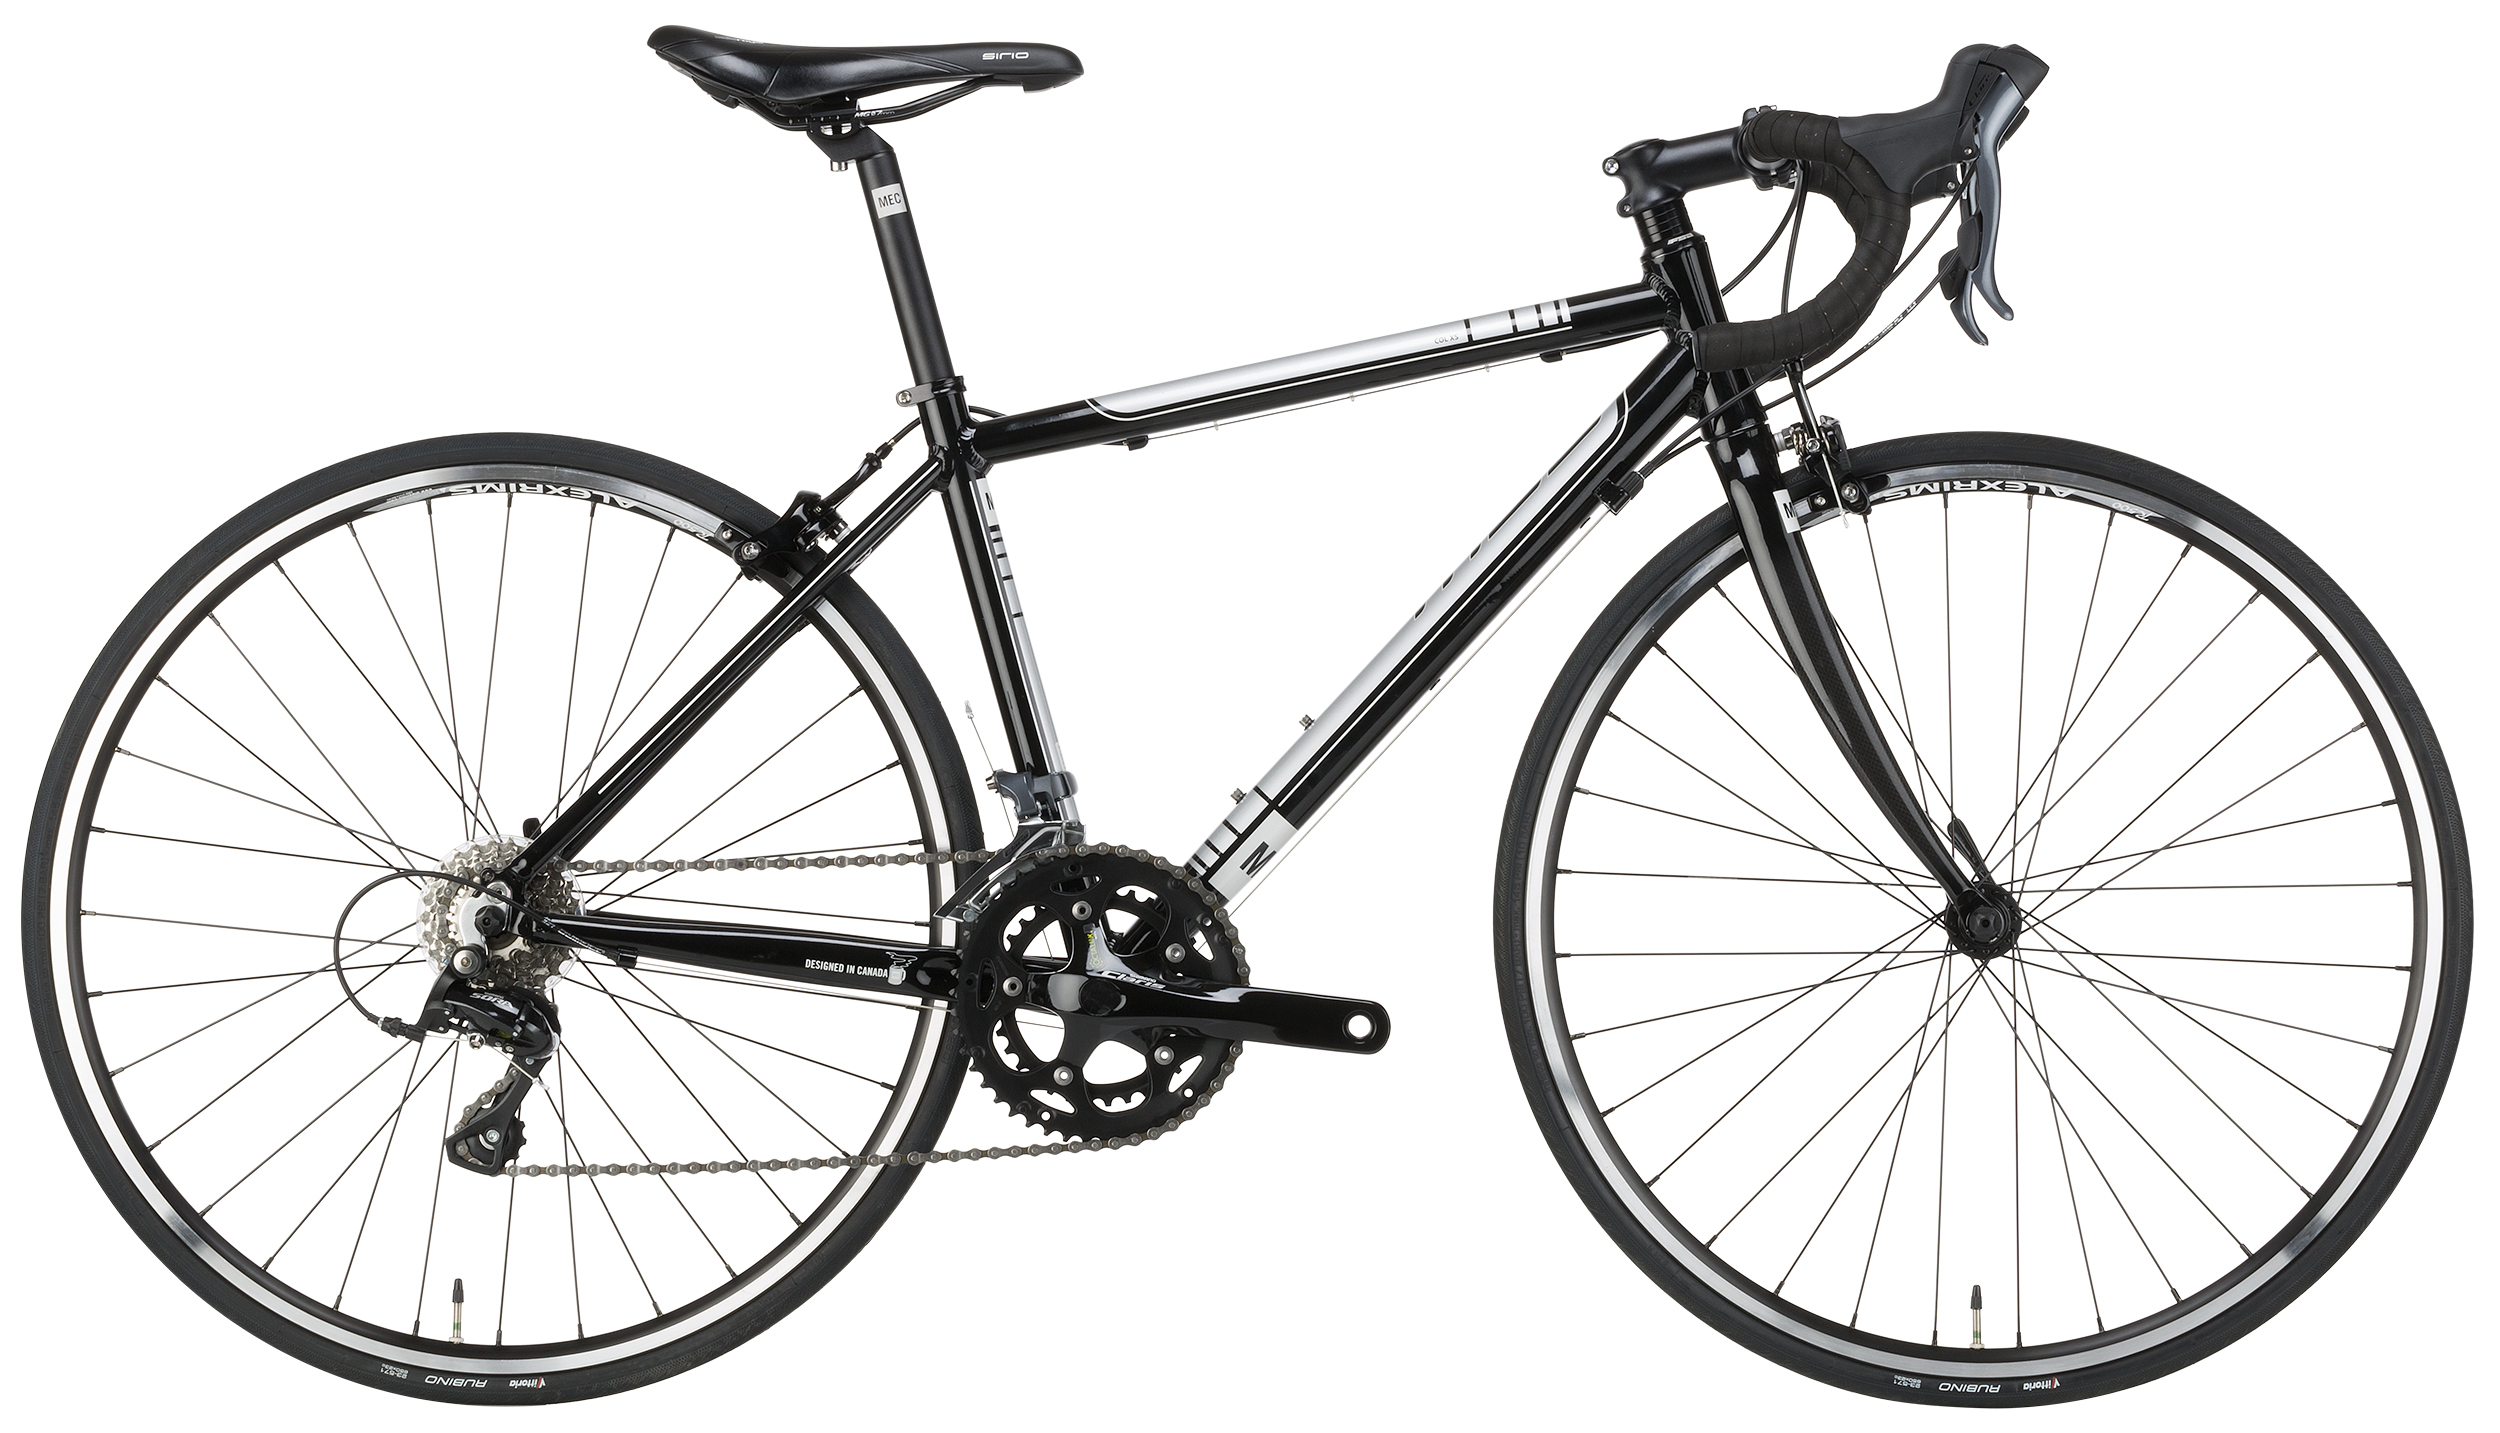 Mec Col Xs Bicycle Youths